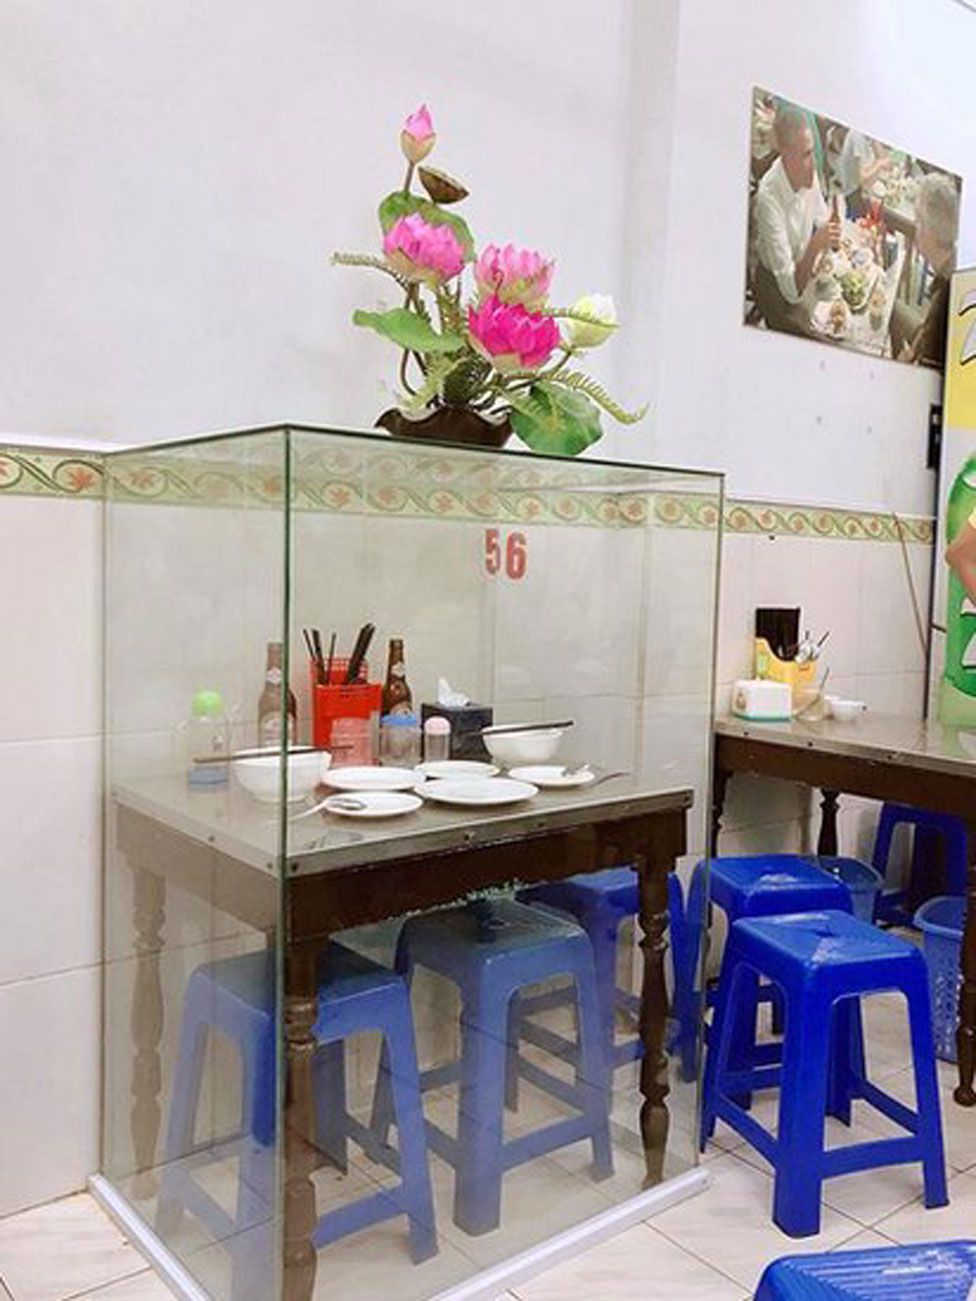 The table where Anthony Bourdain and Barack Obama had their famous meal in Hanoi has been put in a glass case for posterity